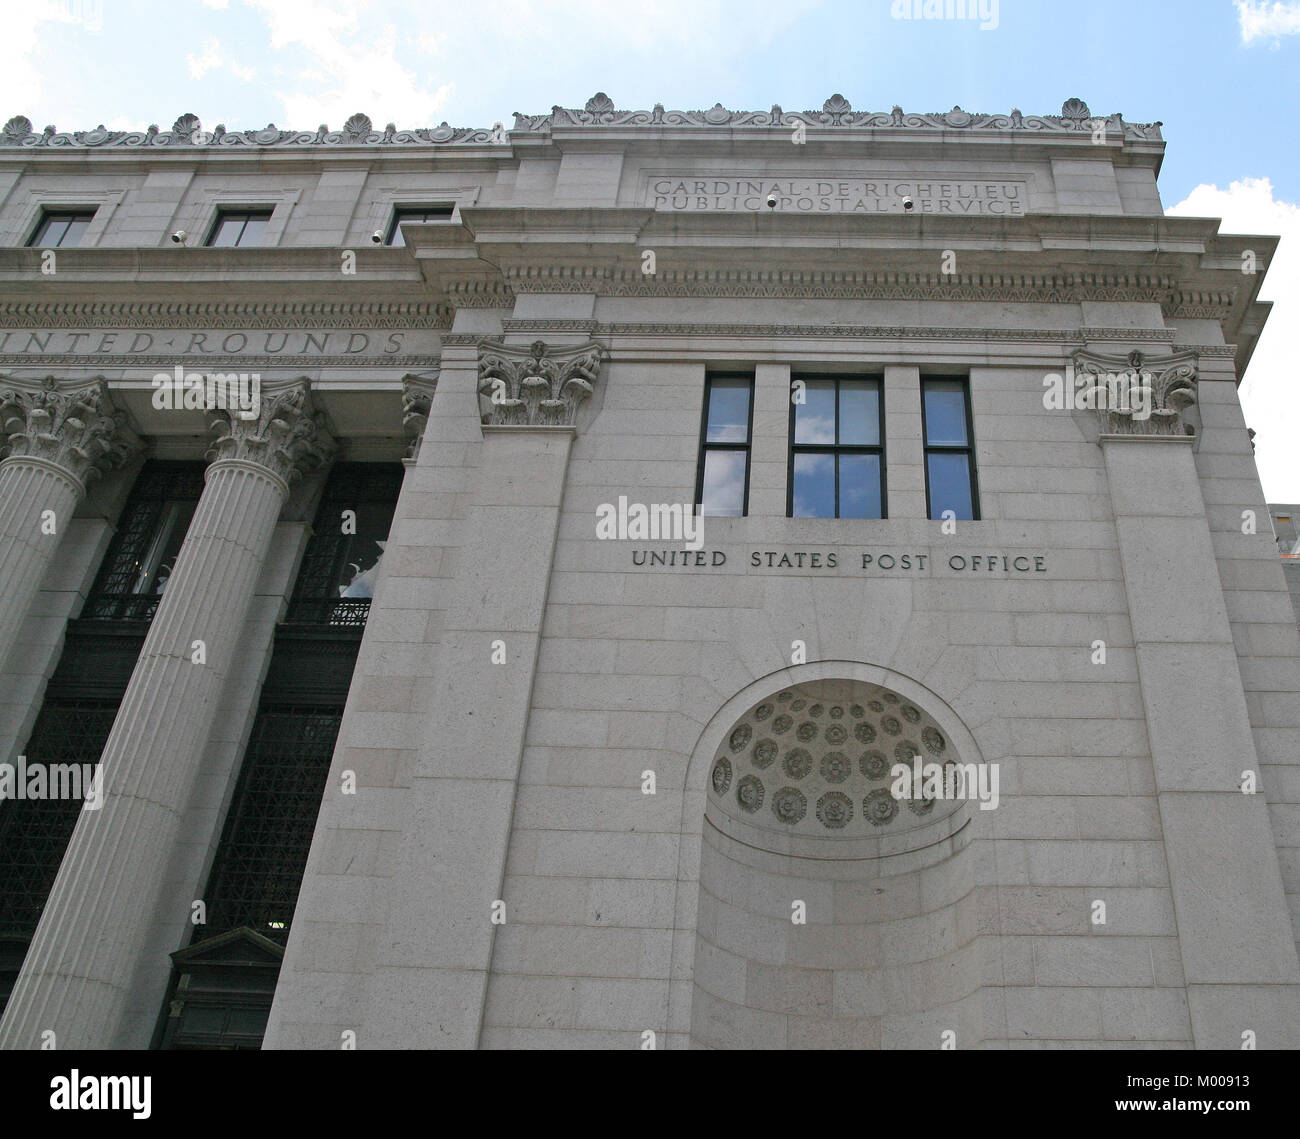 The James A. Farley Post Office Building, New York City, New York State, USA. - Stock Image